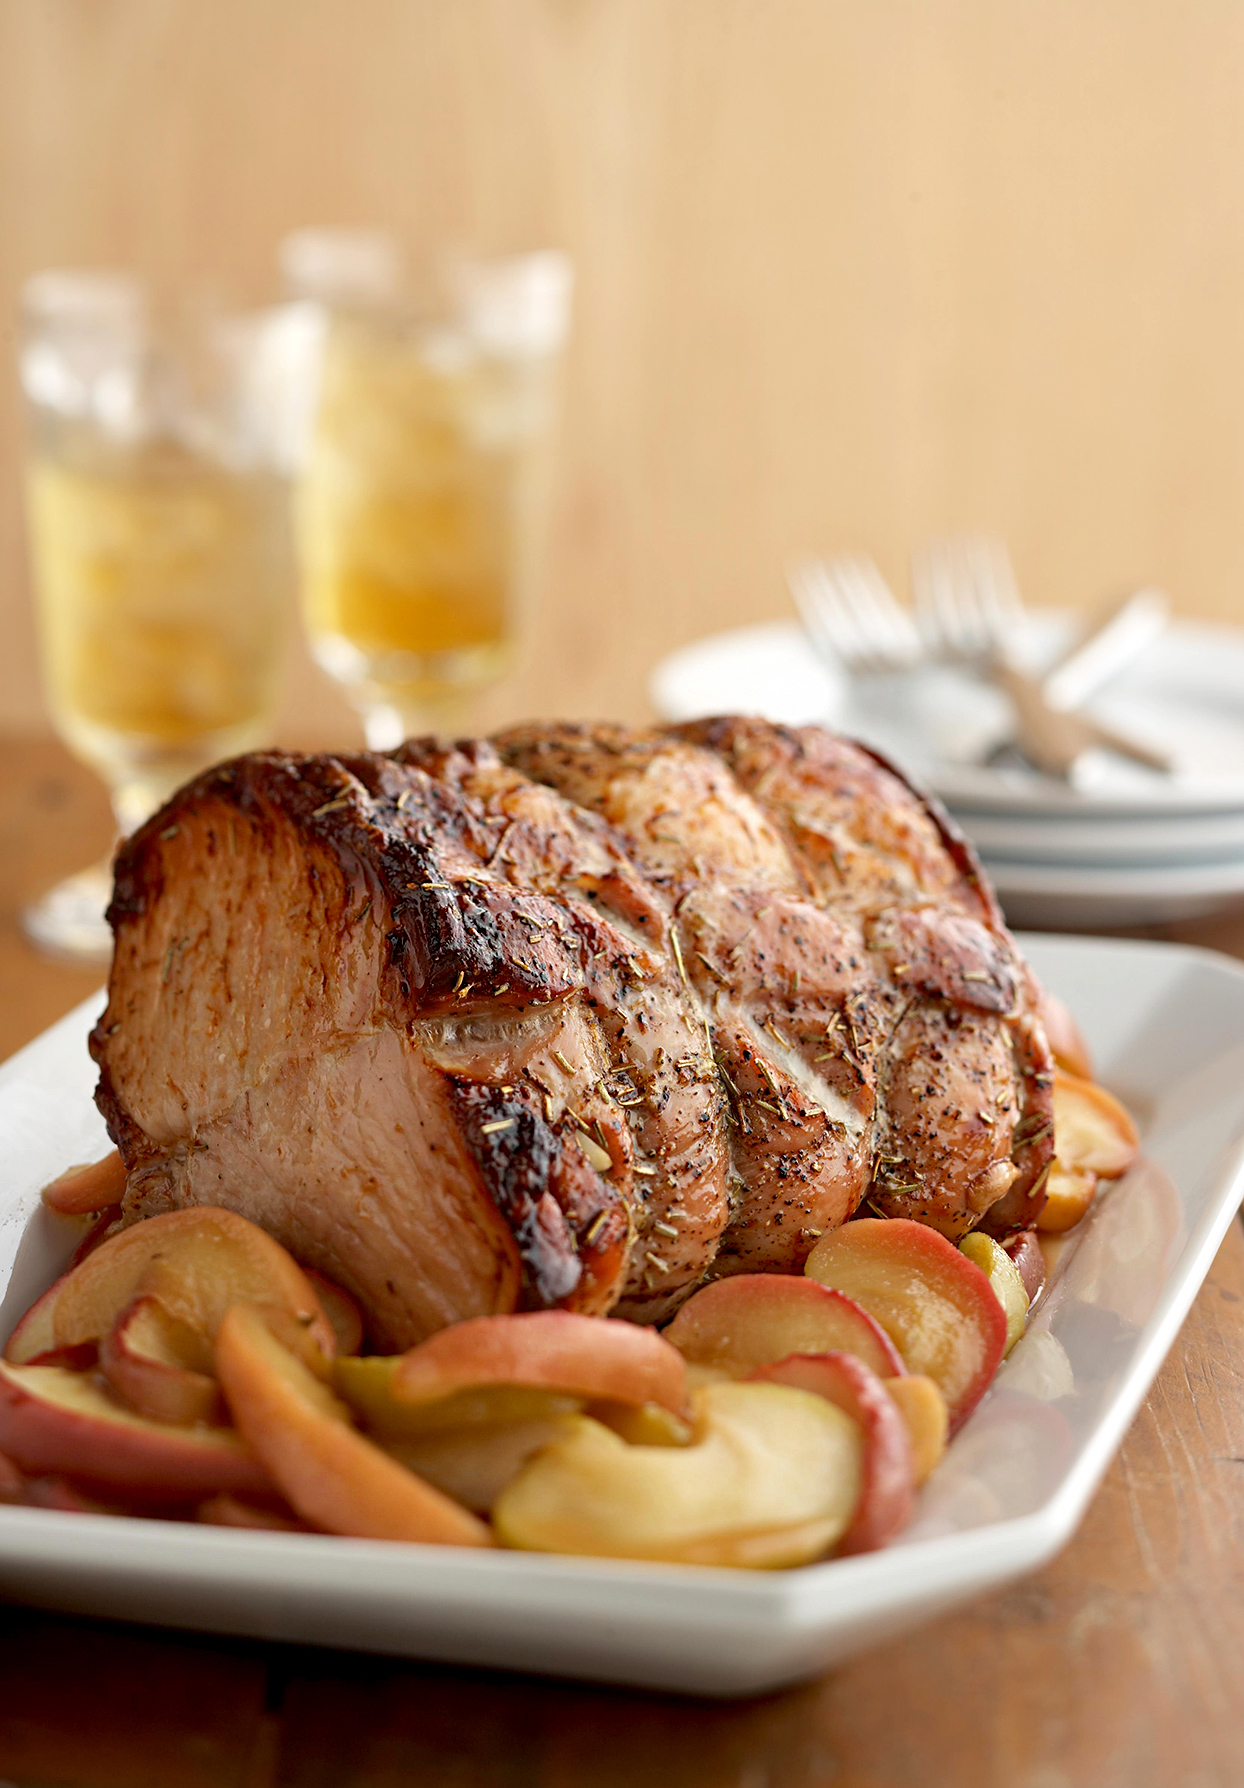 Saucy Apple Pork Roast